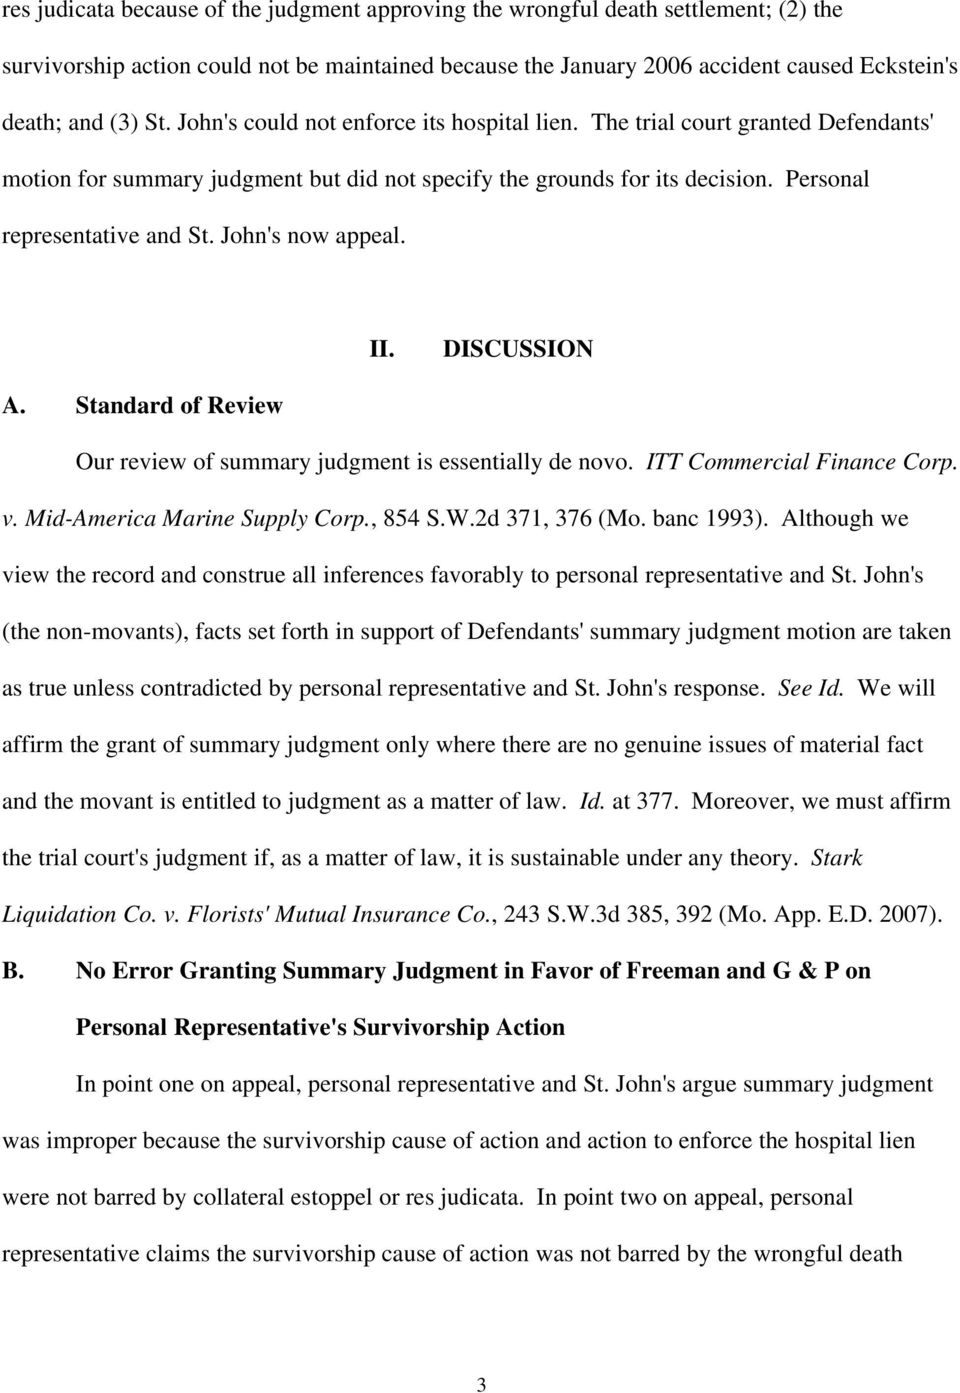 John's now appeal. II. DISCUSSION A. Standard of Review Our review of summary judgment is essentially de novo. ITT Commercial Finance Corp. v. Mid-America Marine Supply Corp., 854 S.W.2d 371, 376 (Mo.